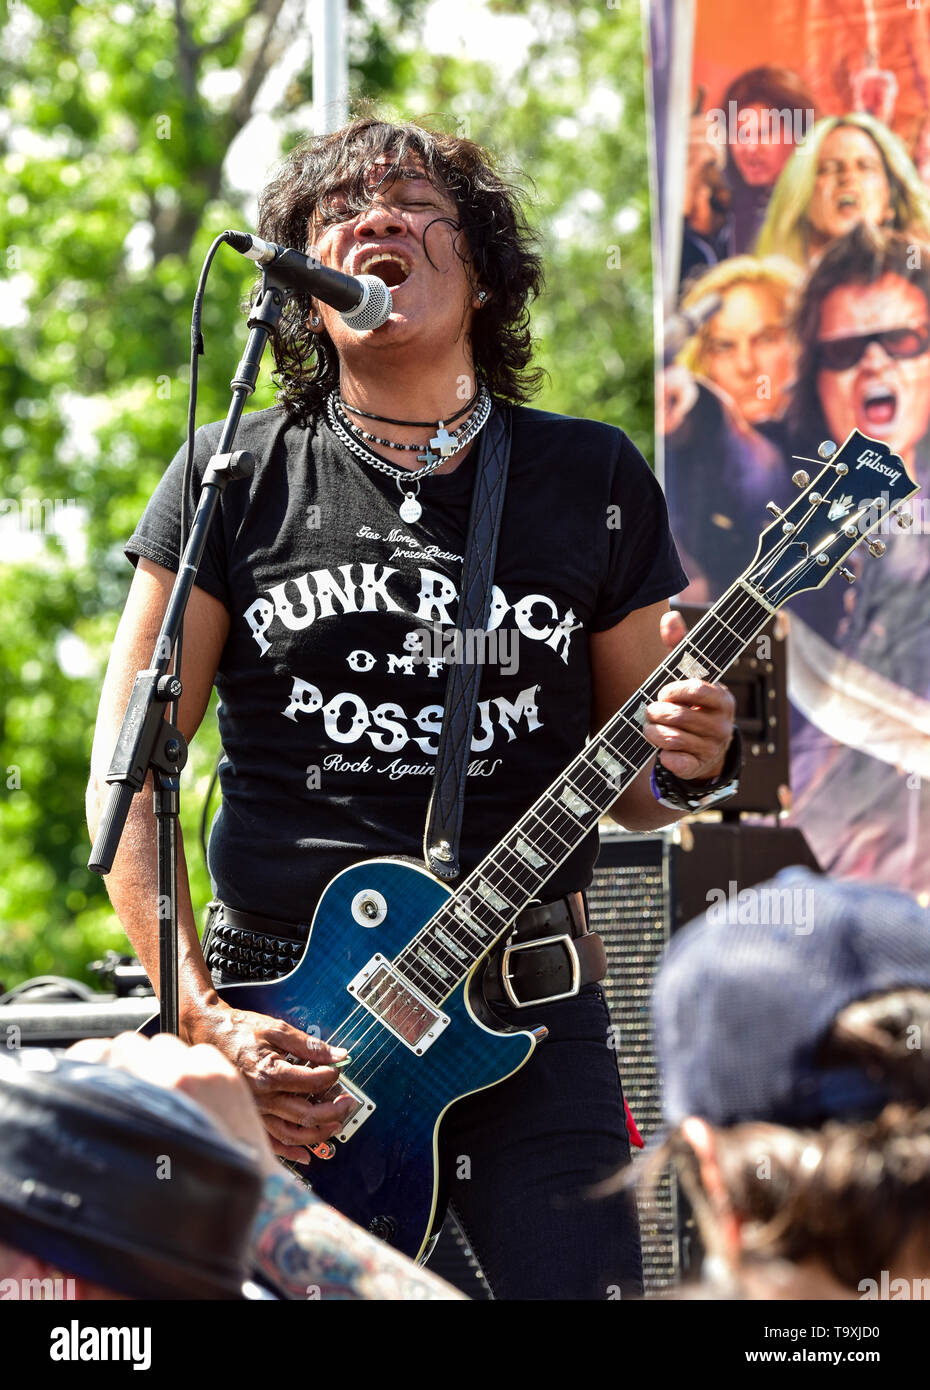 May 5, 2019, Encino, California, Marq Torien of the Bulletboys on stage at the 2019 Ride for Ronnie charity concert at Los Encinos State Historic Park Stock Photo